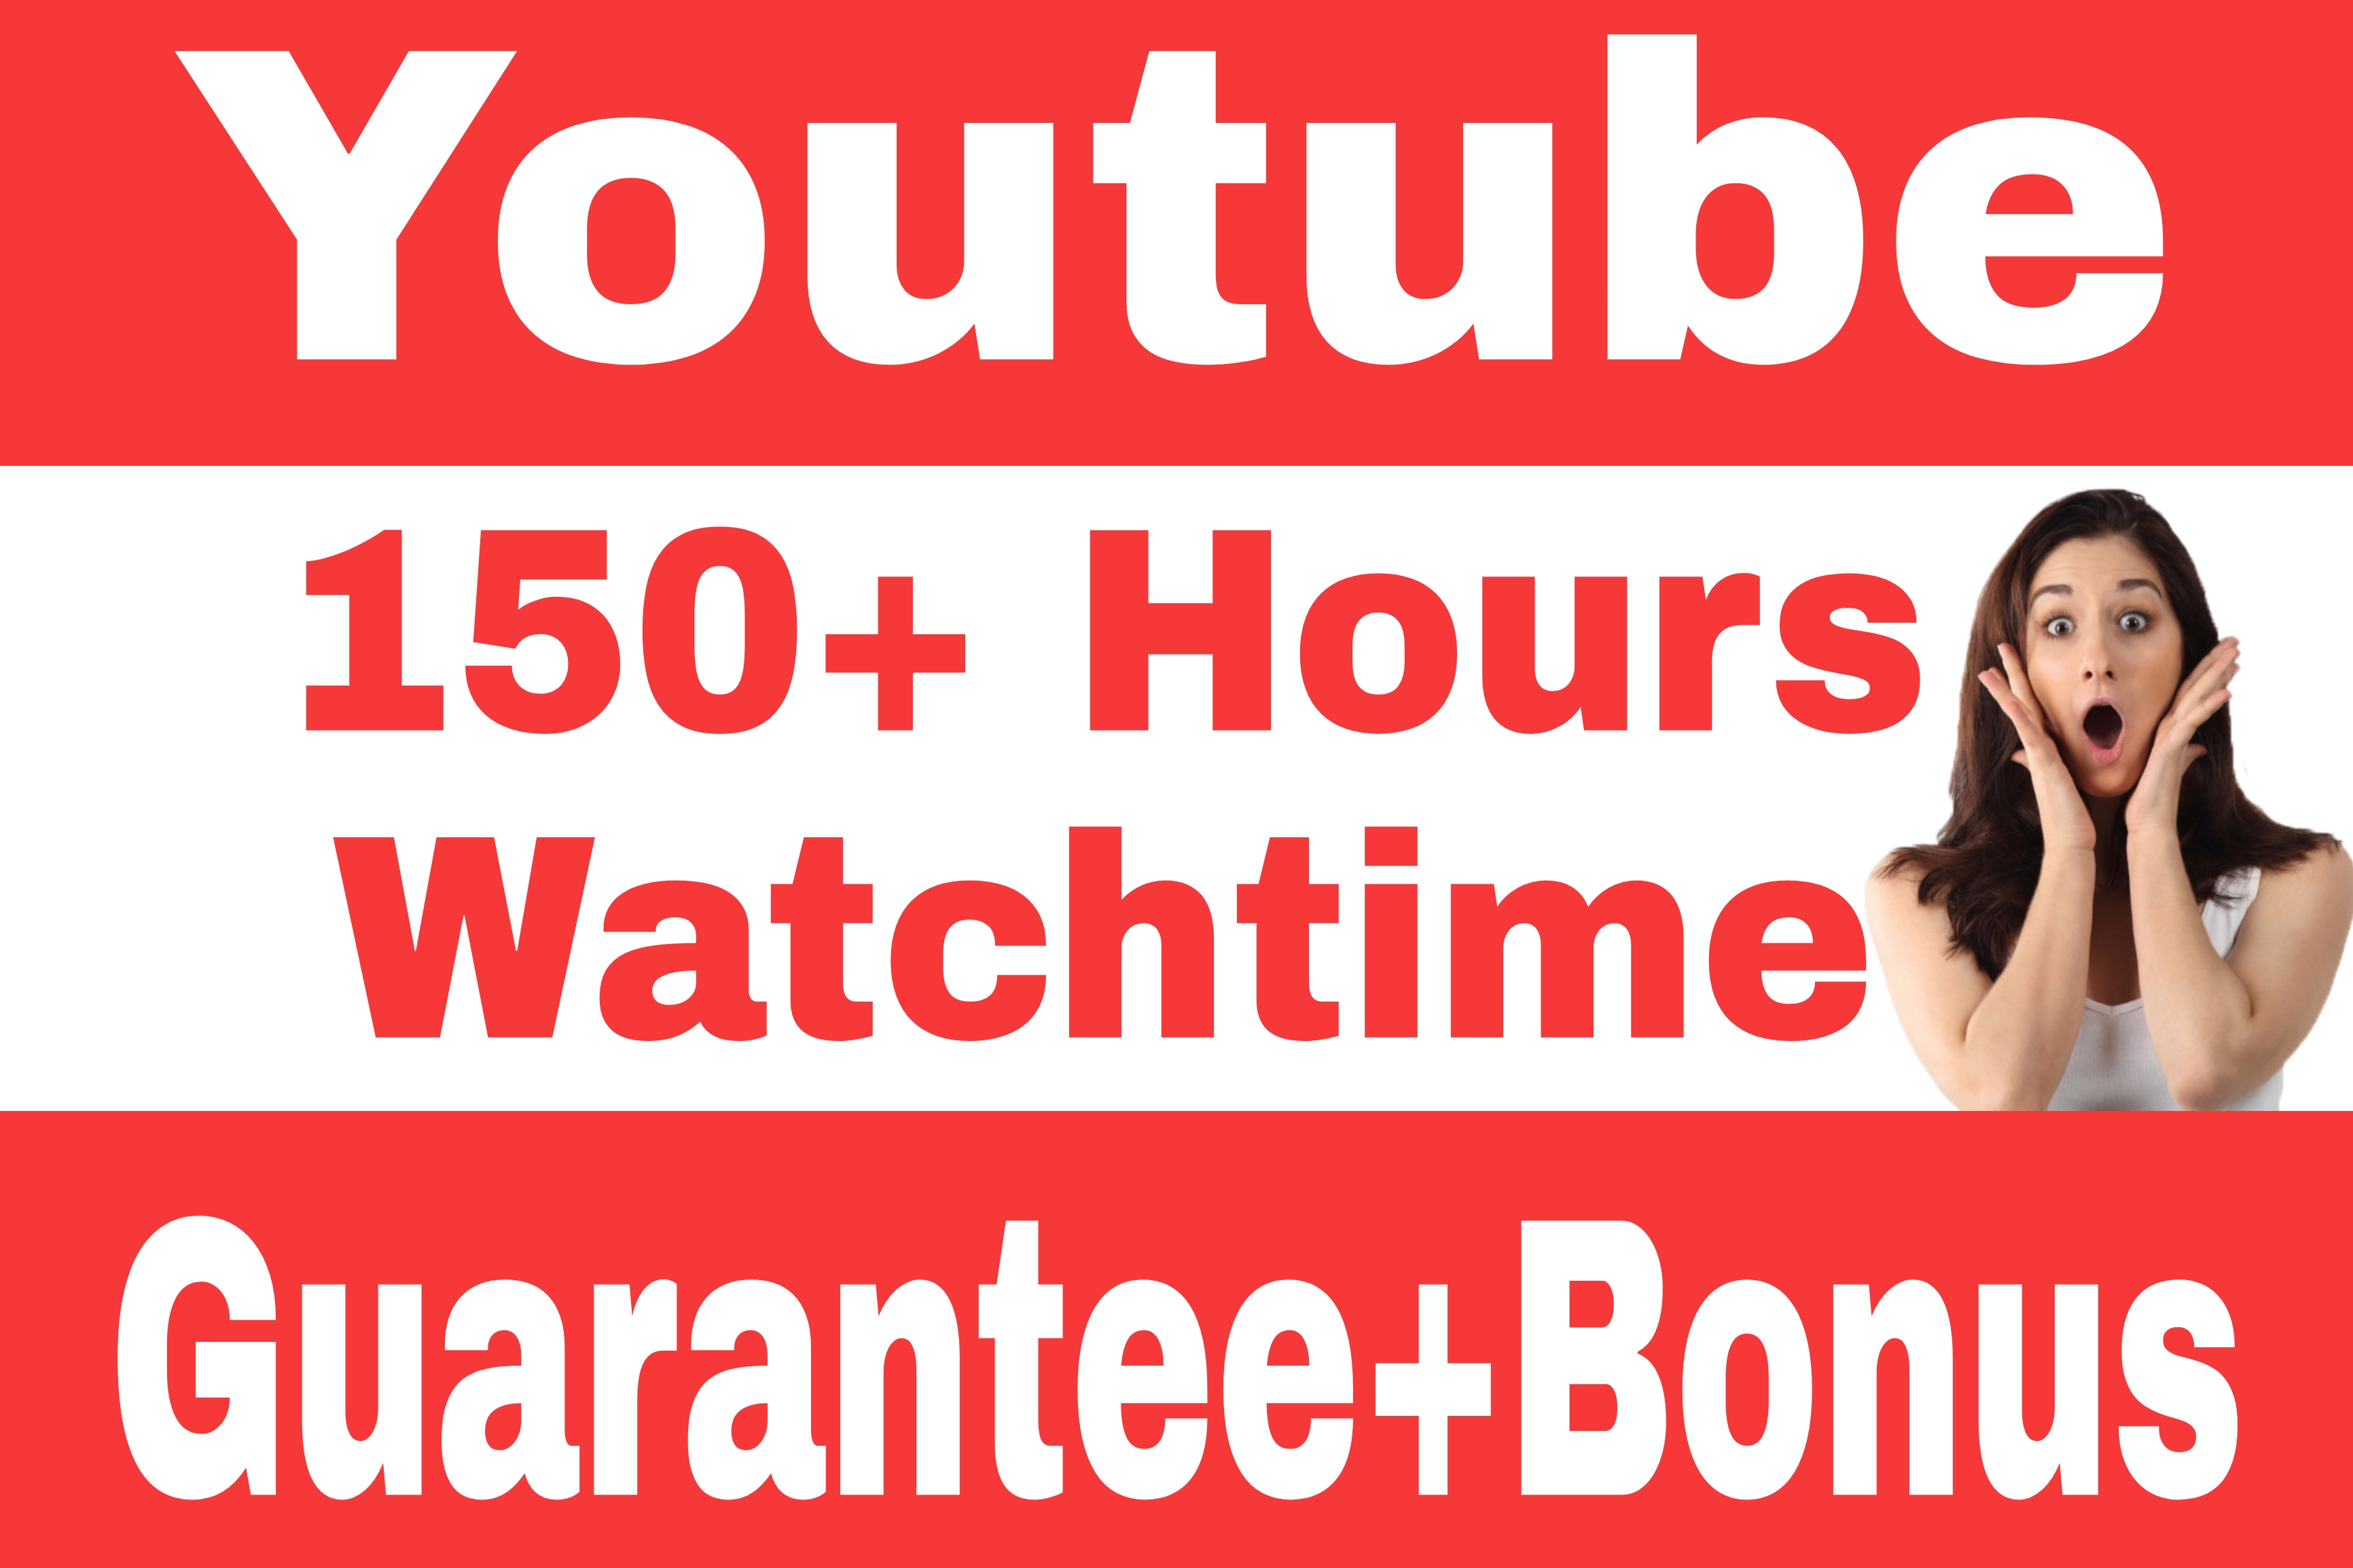 Youtube Video Watch Time Hours Promotion By Real Audience